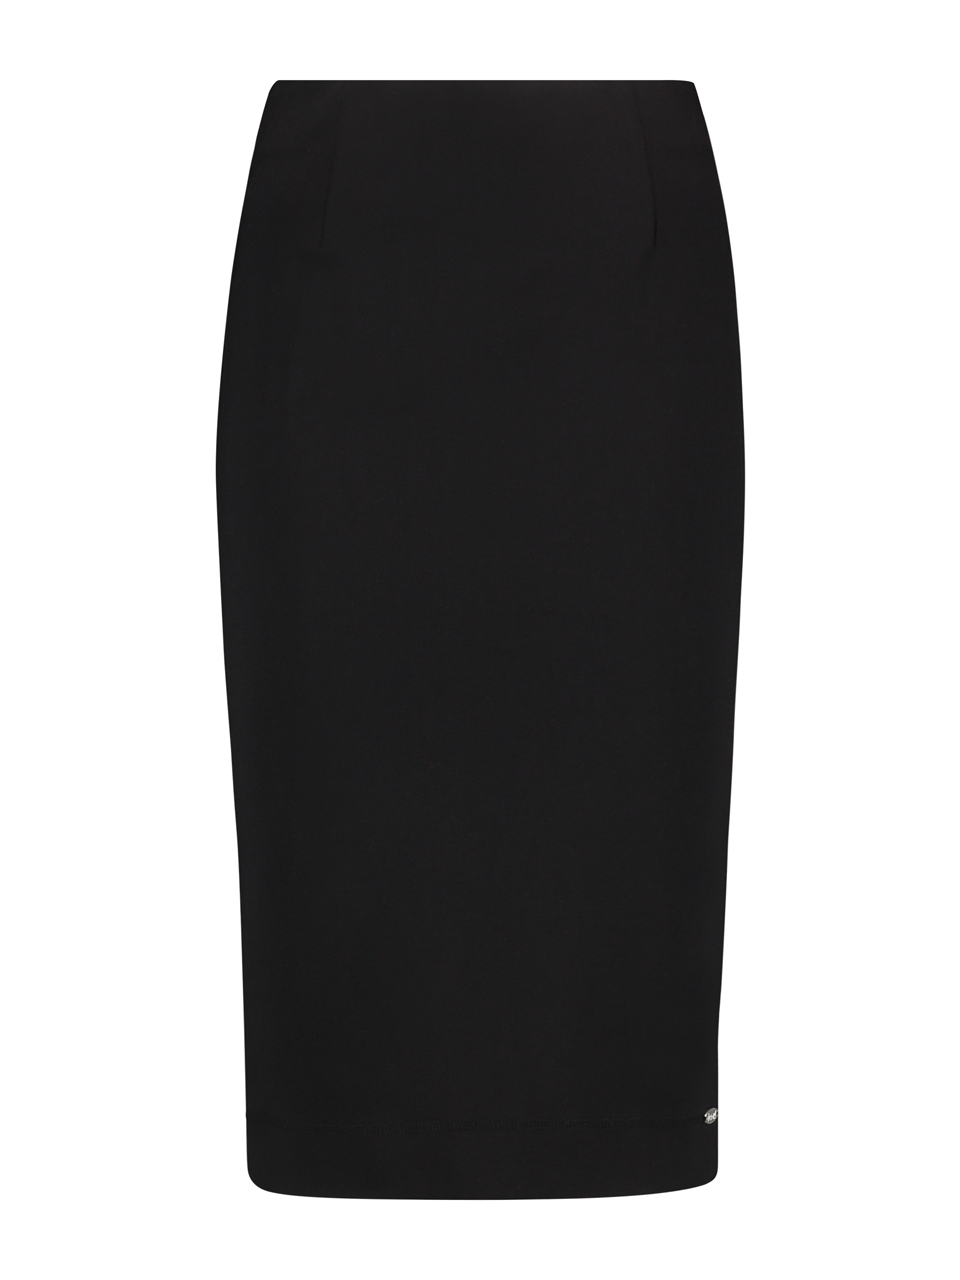 Skirt thick knit - Black